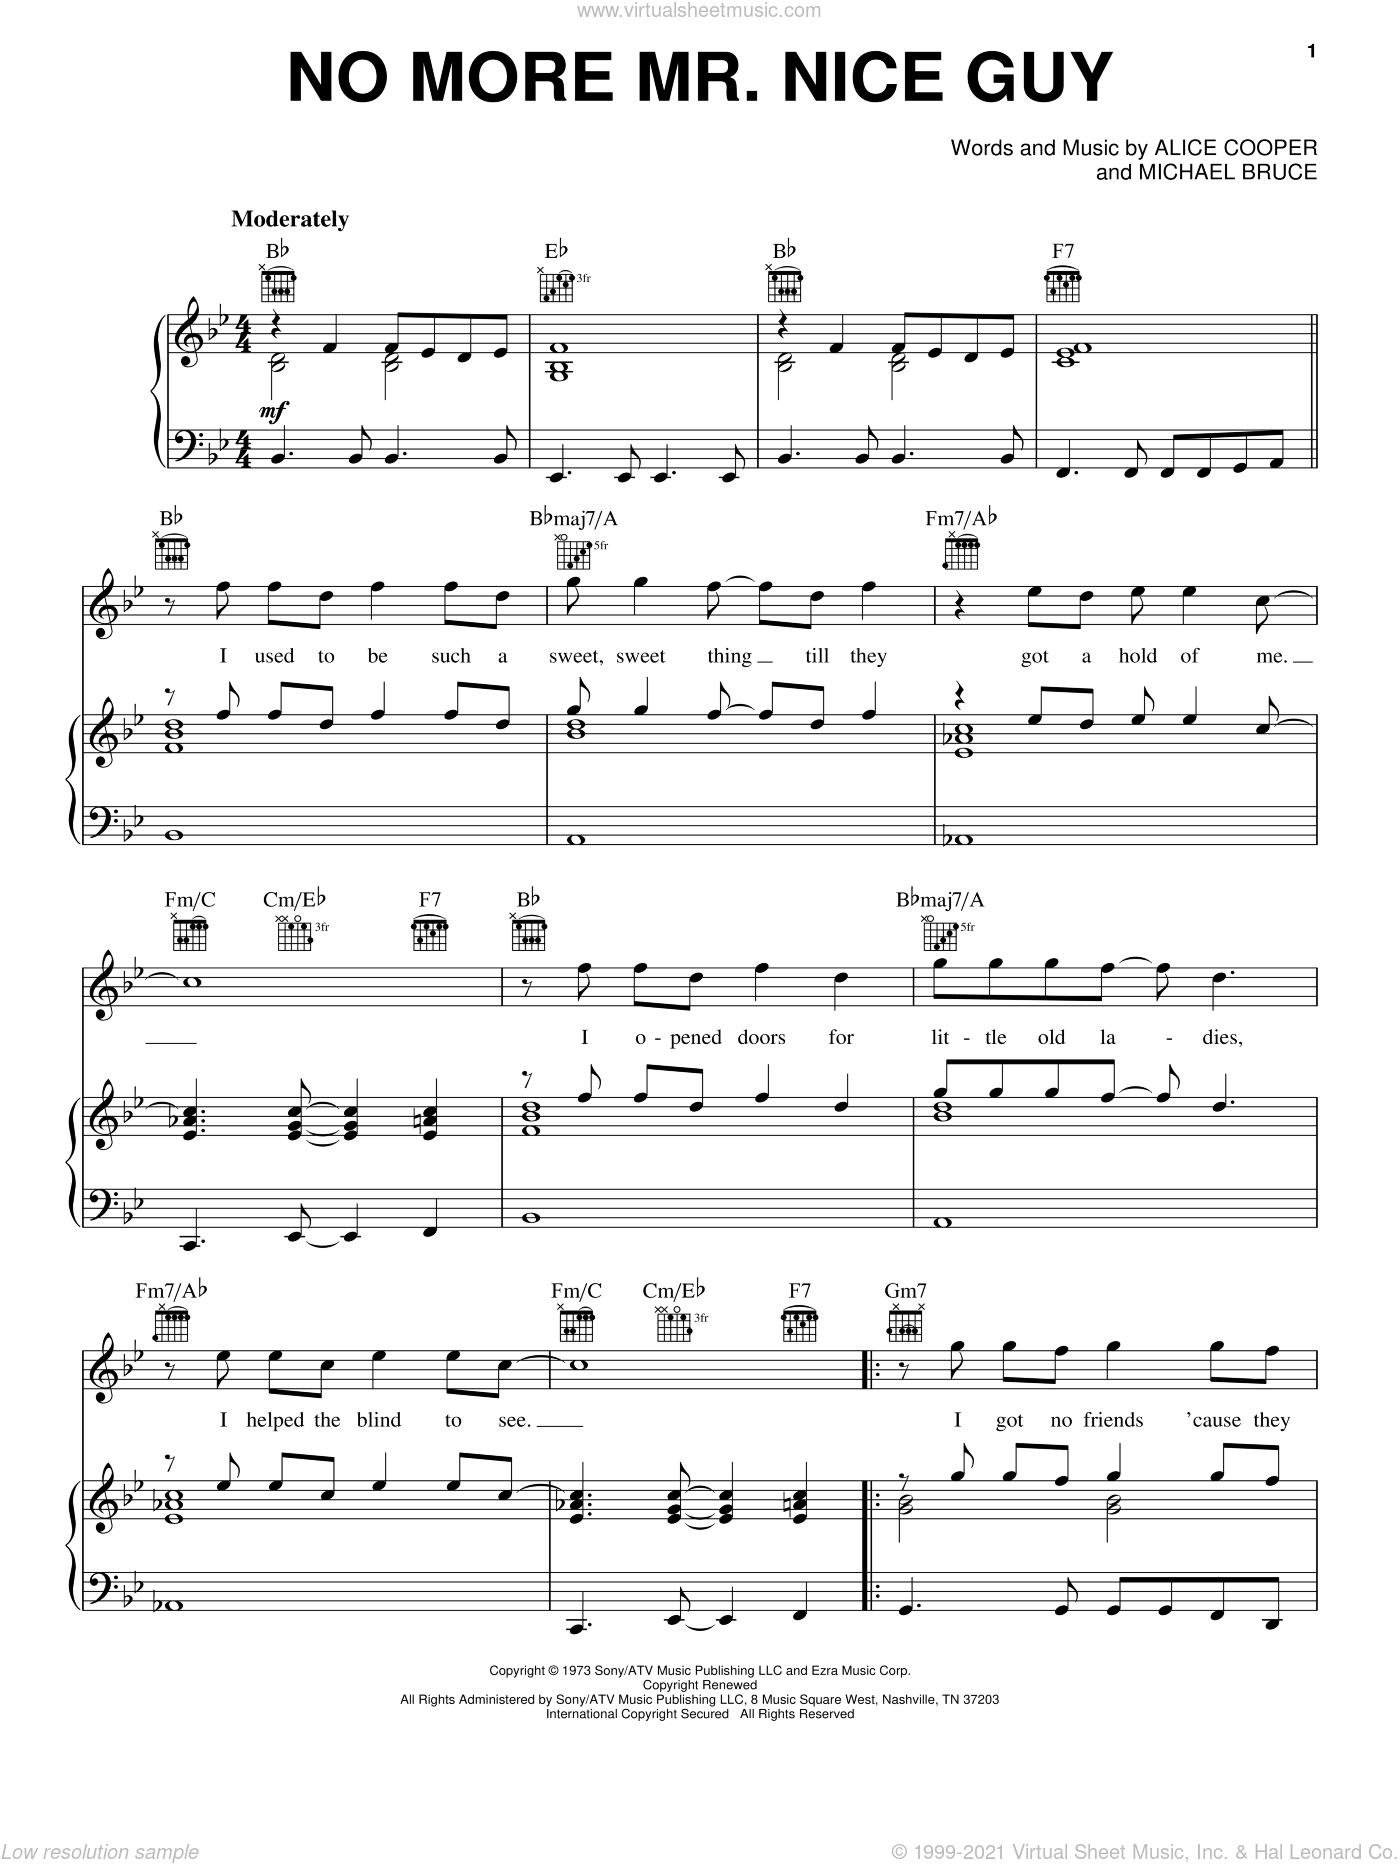 No More Mr. Nice Guy sheet music for voice, piano or guitar by Alice Cooper, intermediate voice, piano or guitar. Score Image Preview.